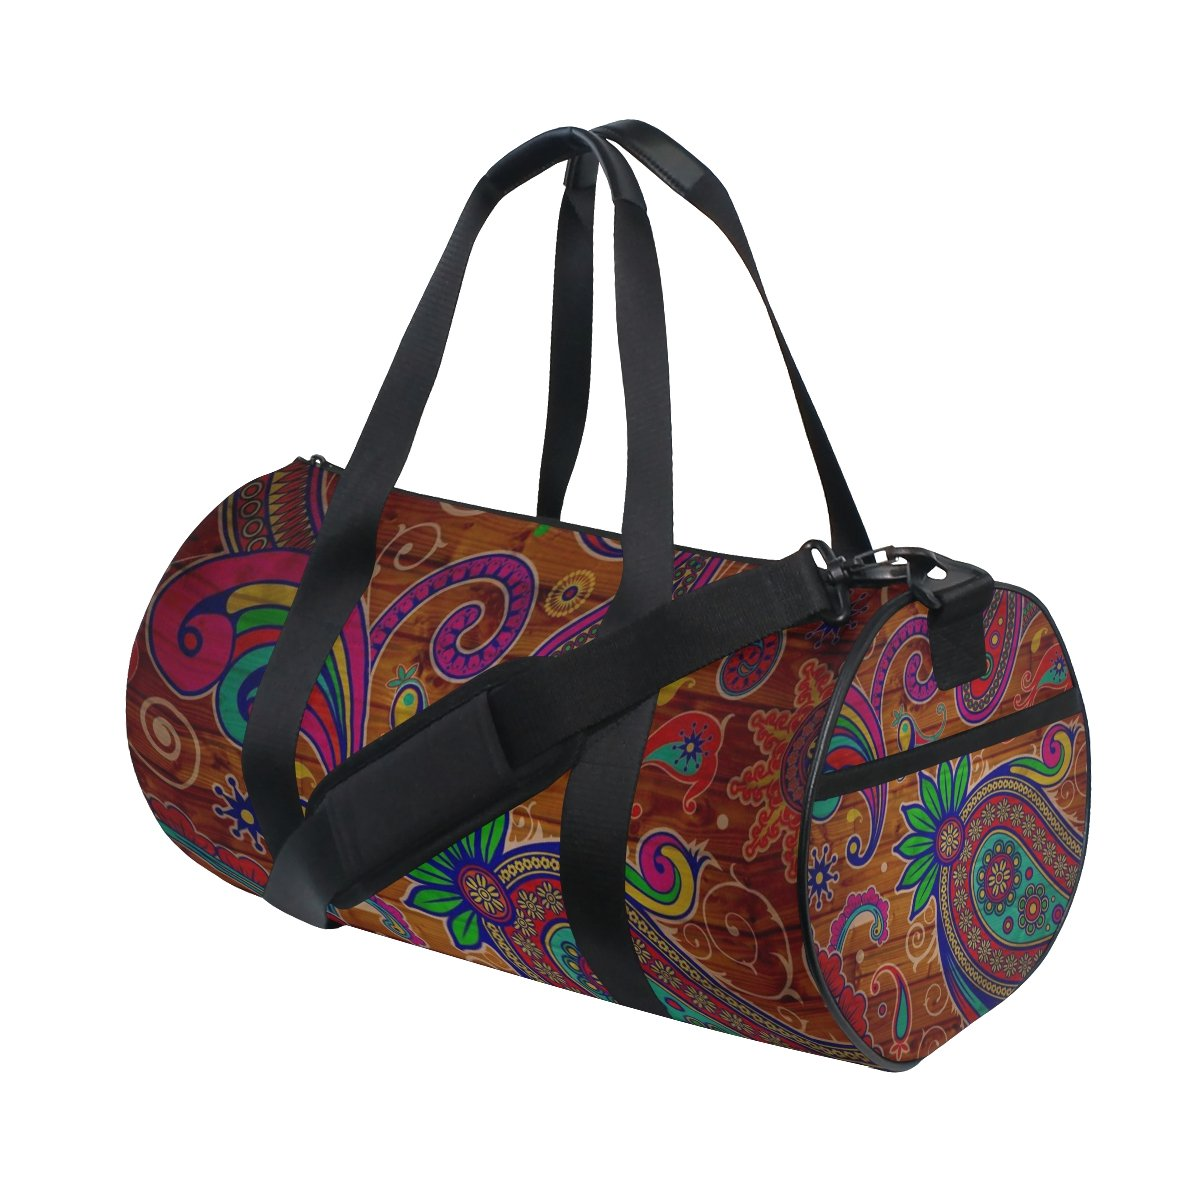 Pattern Texture Colorful Lightweight Canvas Sports Travel Duffel Yoga Gym Bag by JIUMEI